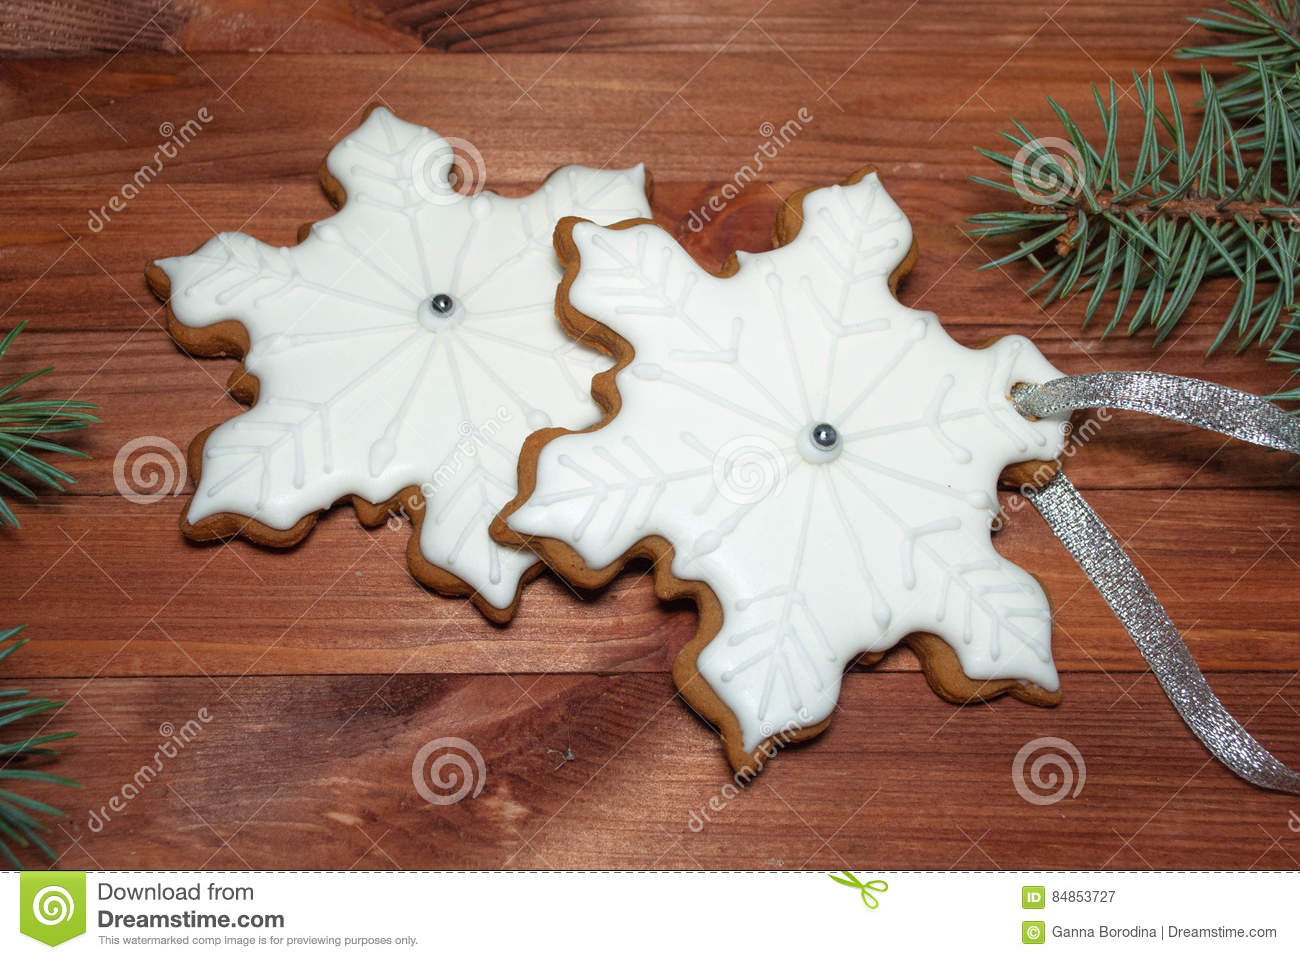 Royal Icing Gingerbread Snowflakes Cookies On Wooden Background